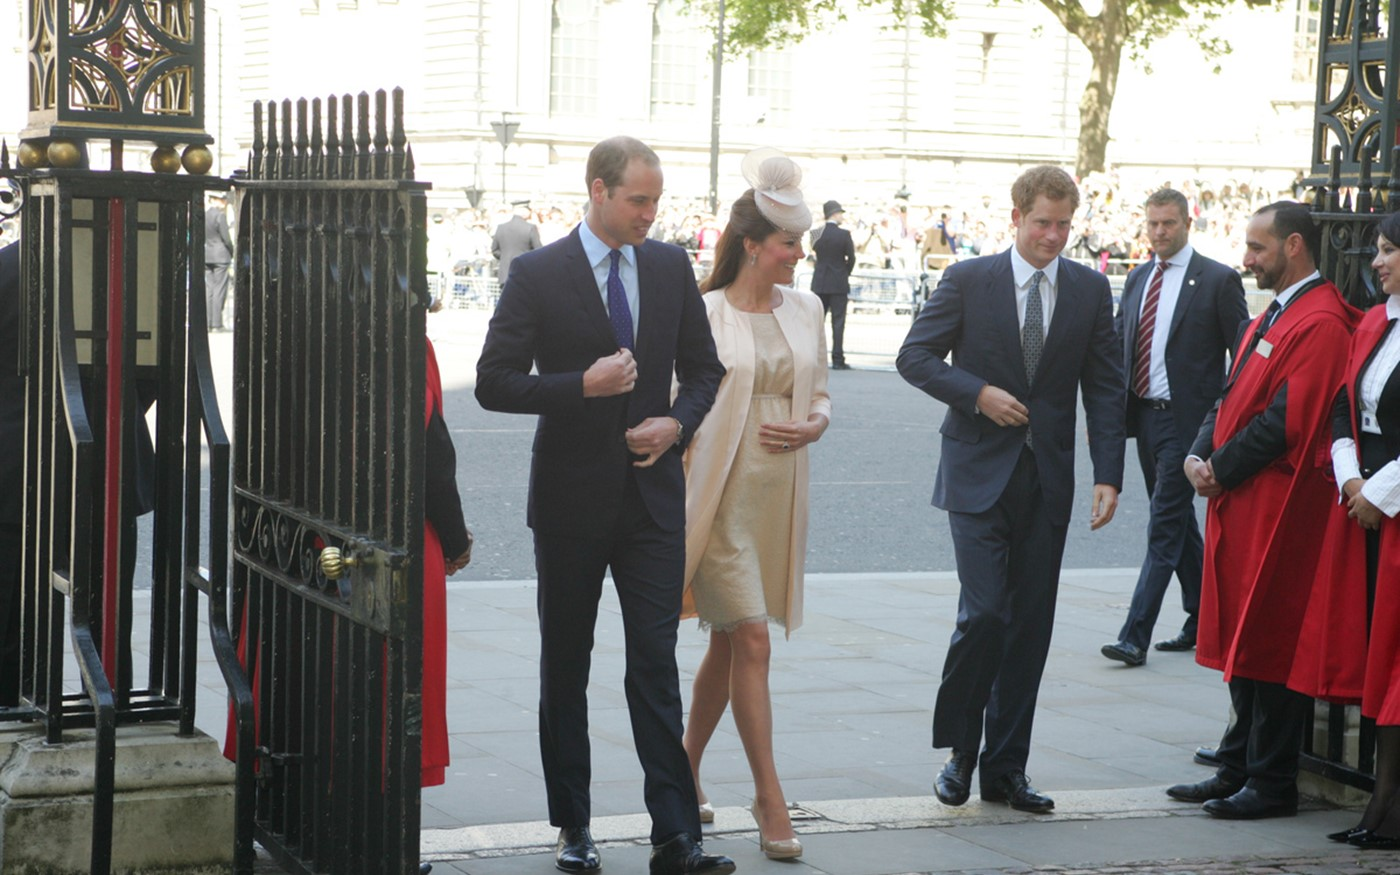 TRH The Duke and Duchess of Cambridge and HRH Prince Henry of Wales arrive at the Abbey